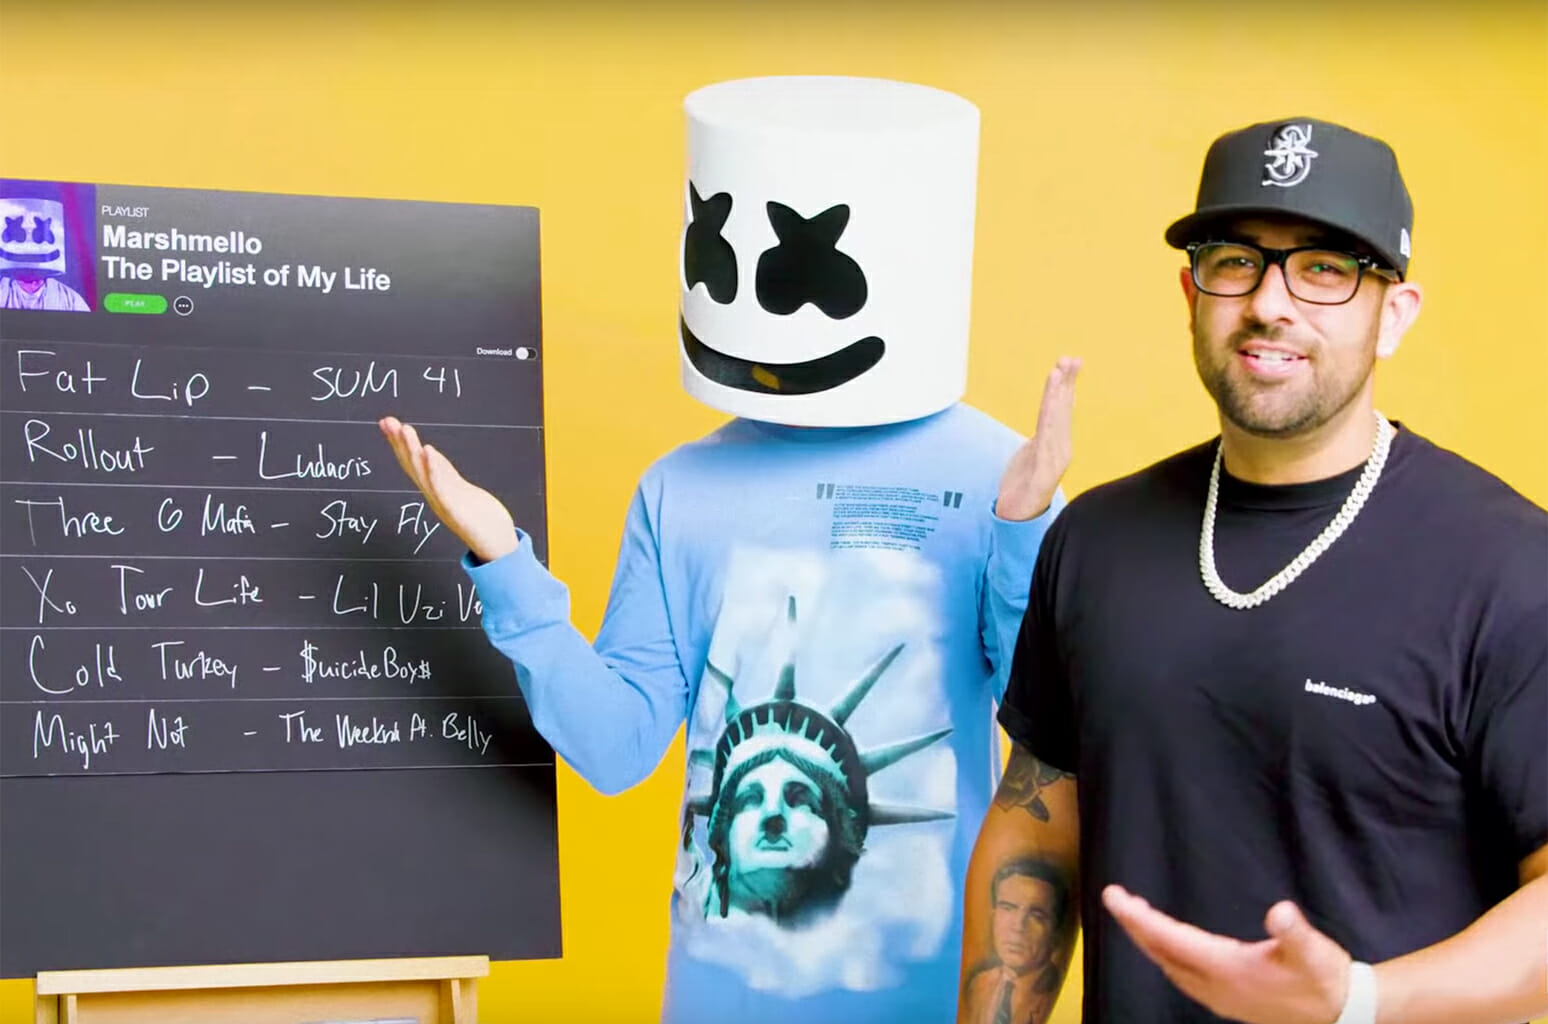 Moe Shalizi to begin own management firm following departure from Red LightMarshmello Teen Vogue Playlist 2018 Billboard 1548